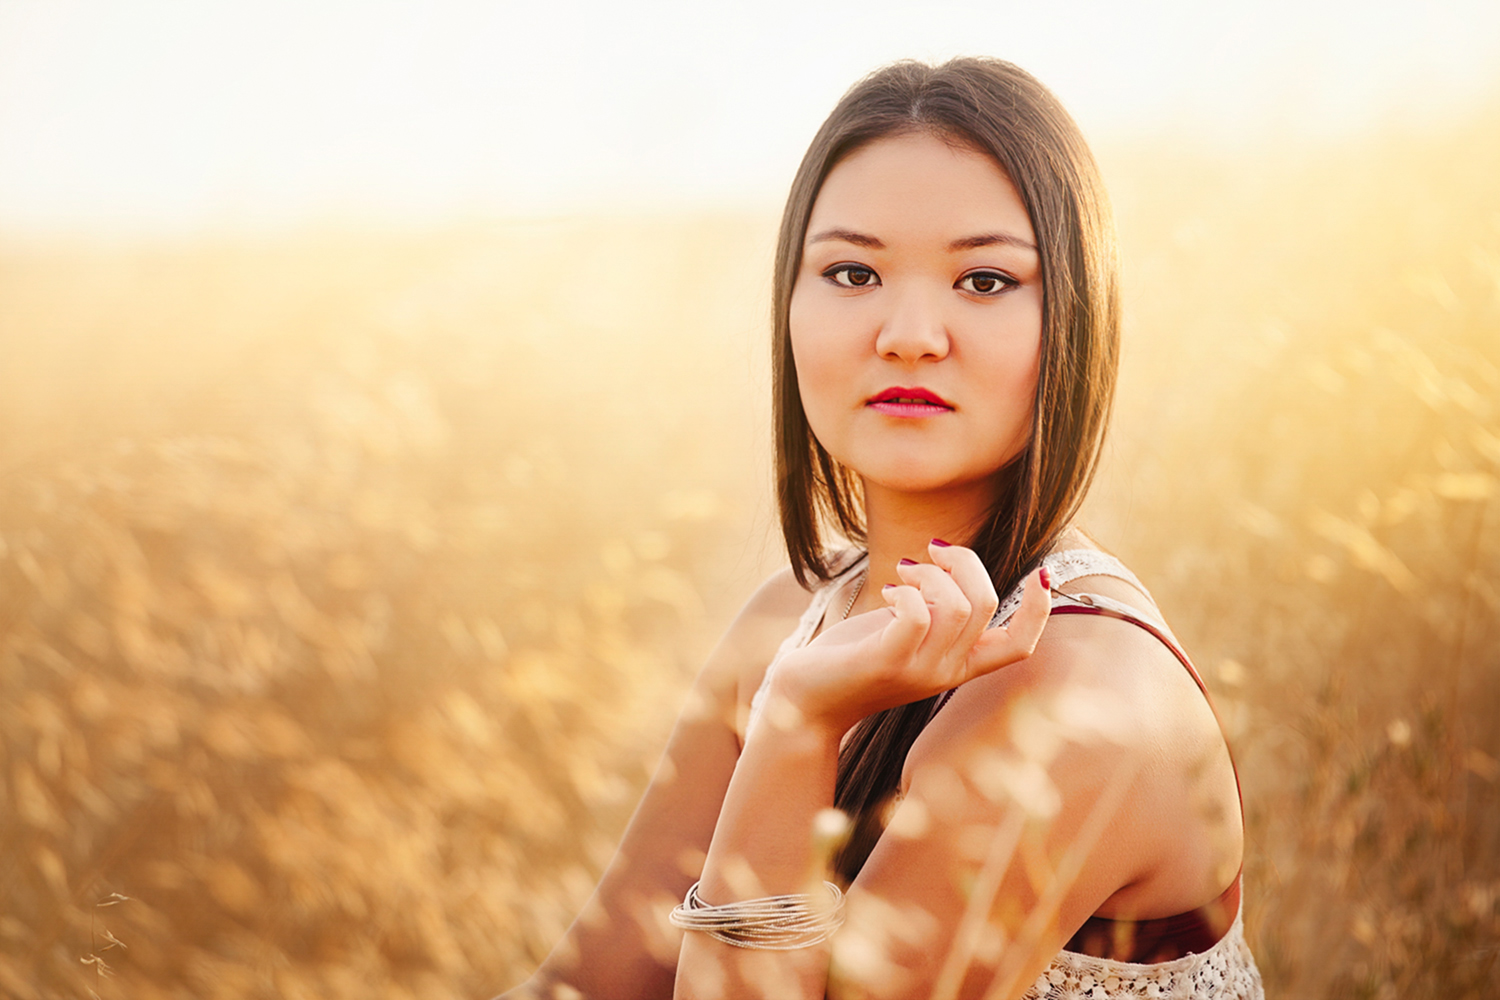 Outdoor Lifestyle Photo Sessions for High School Seniors by Mayumi Acosta Photography in Sacramento CA copy.jpg